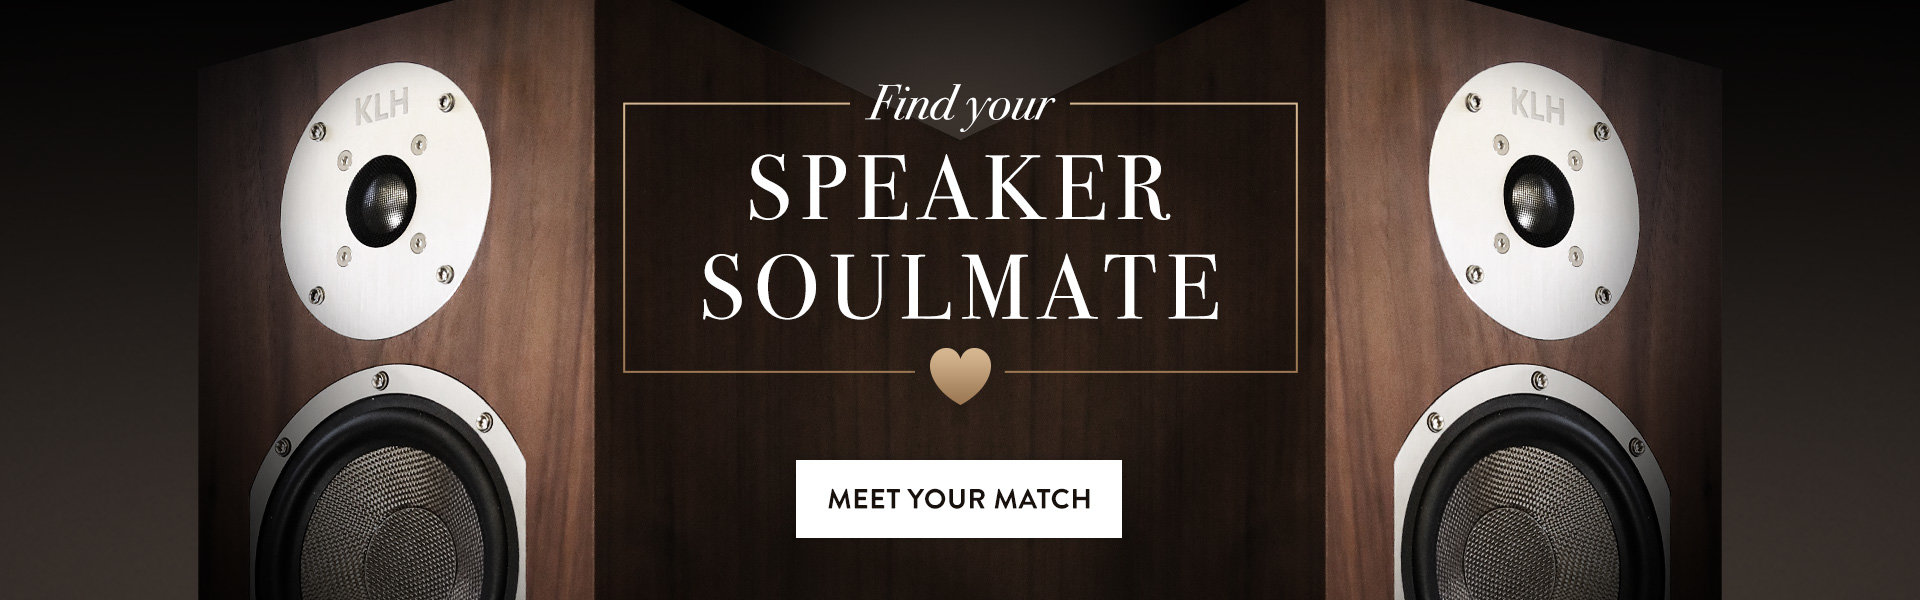 Find your speaker soulmate